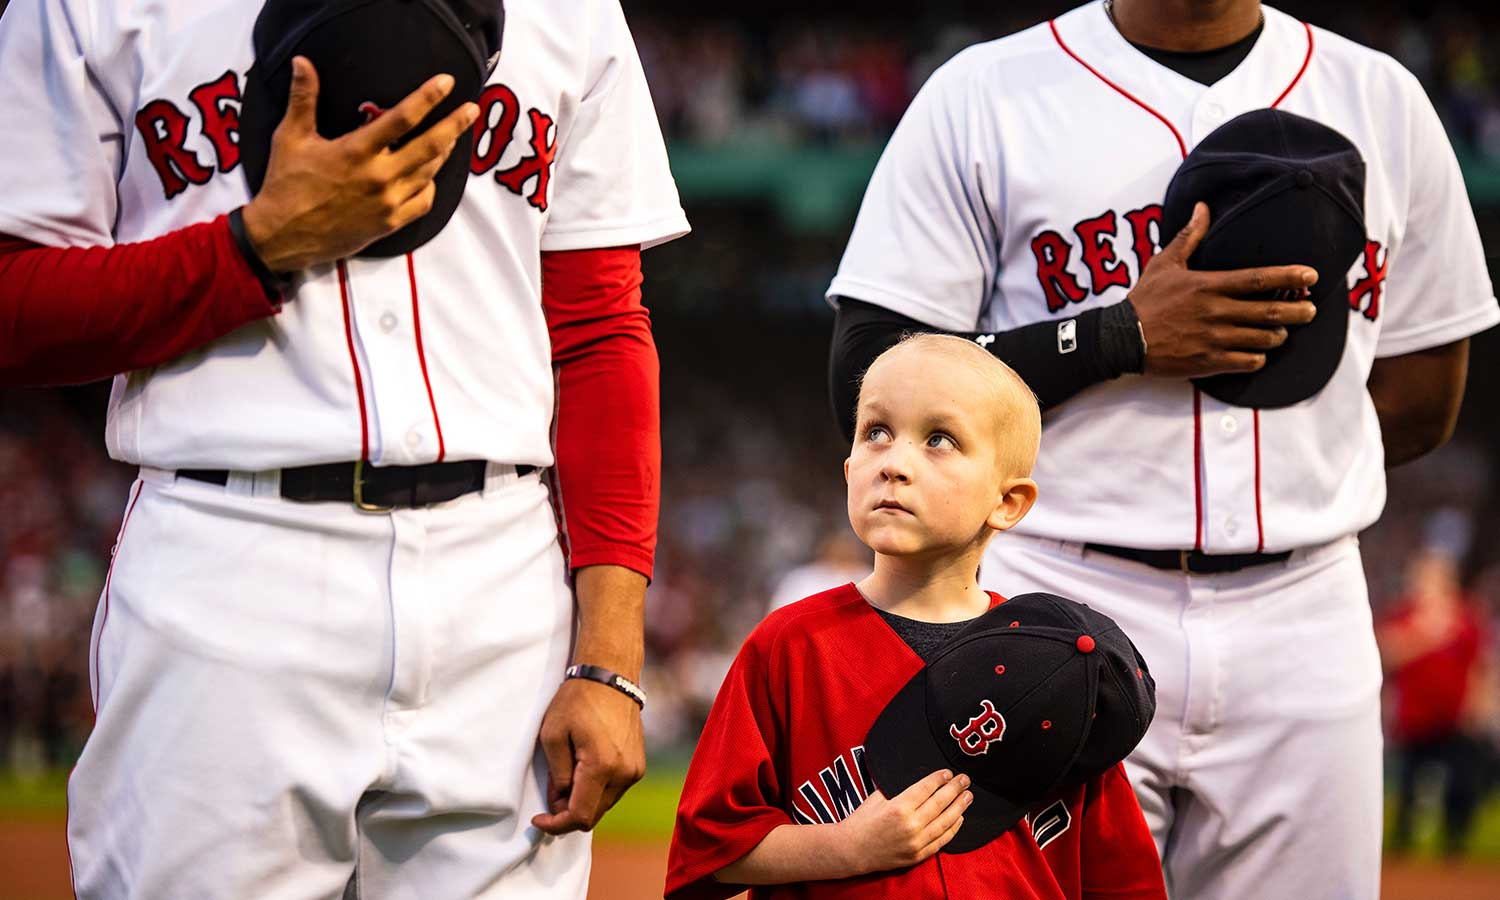 Jimmy Fund & Boston Red Sox